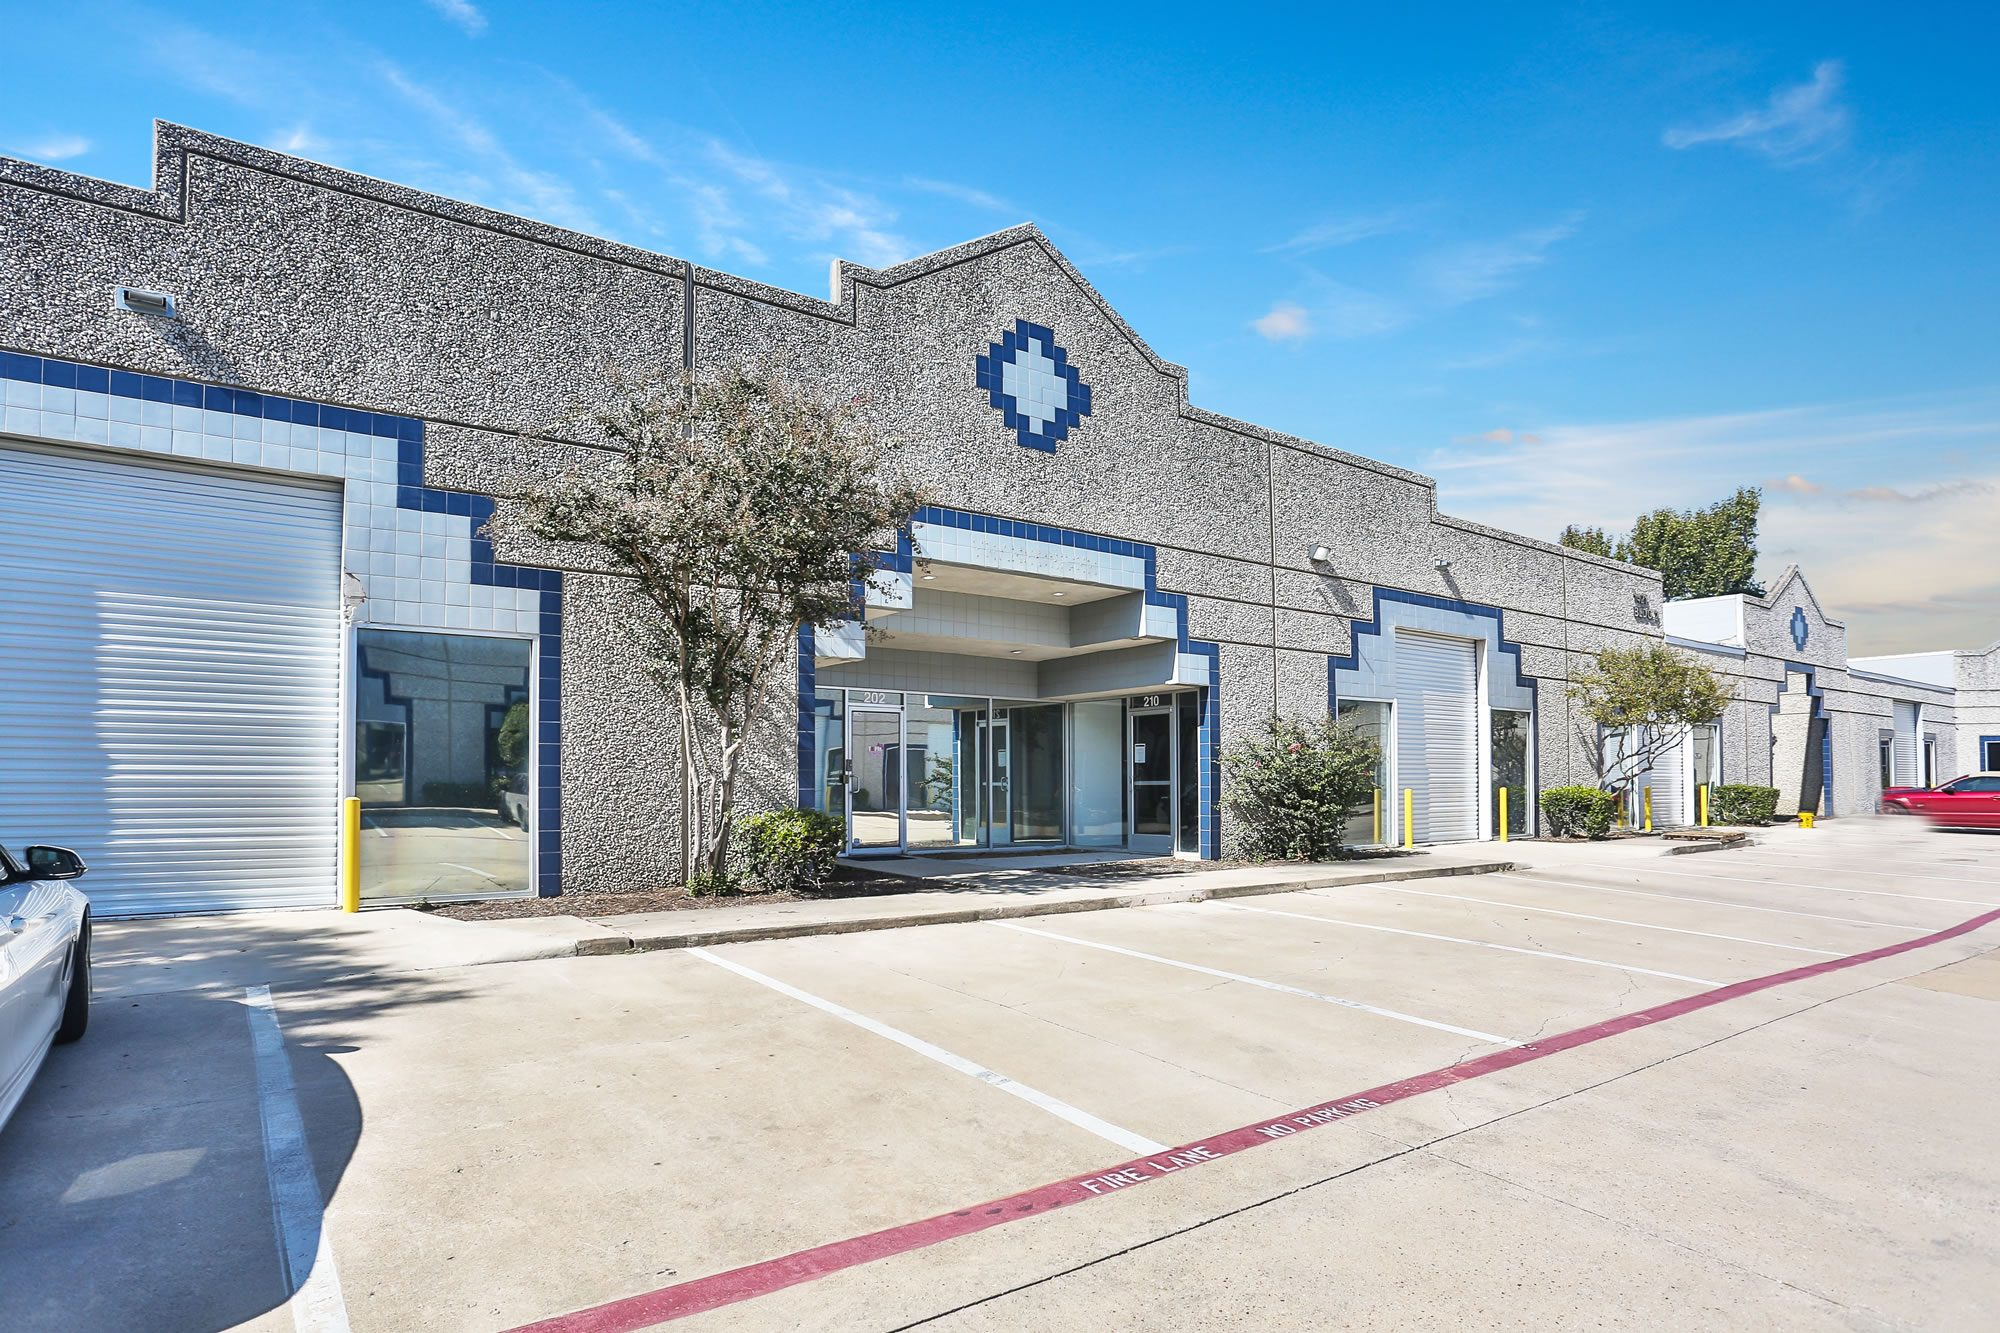 FREO Group - First acquisition in the United States - Image 1